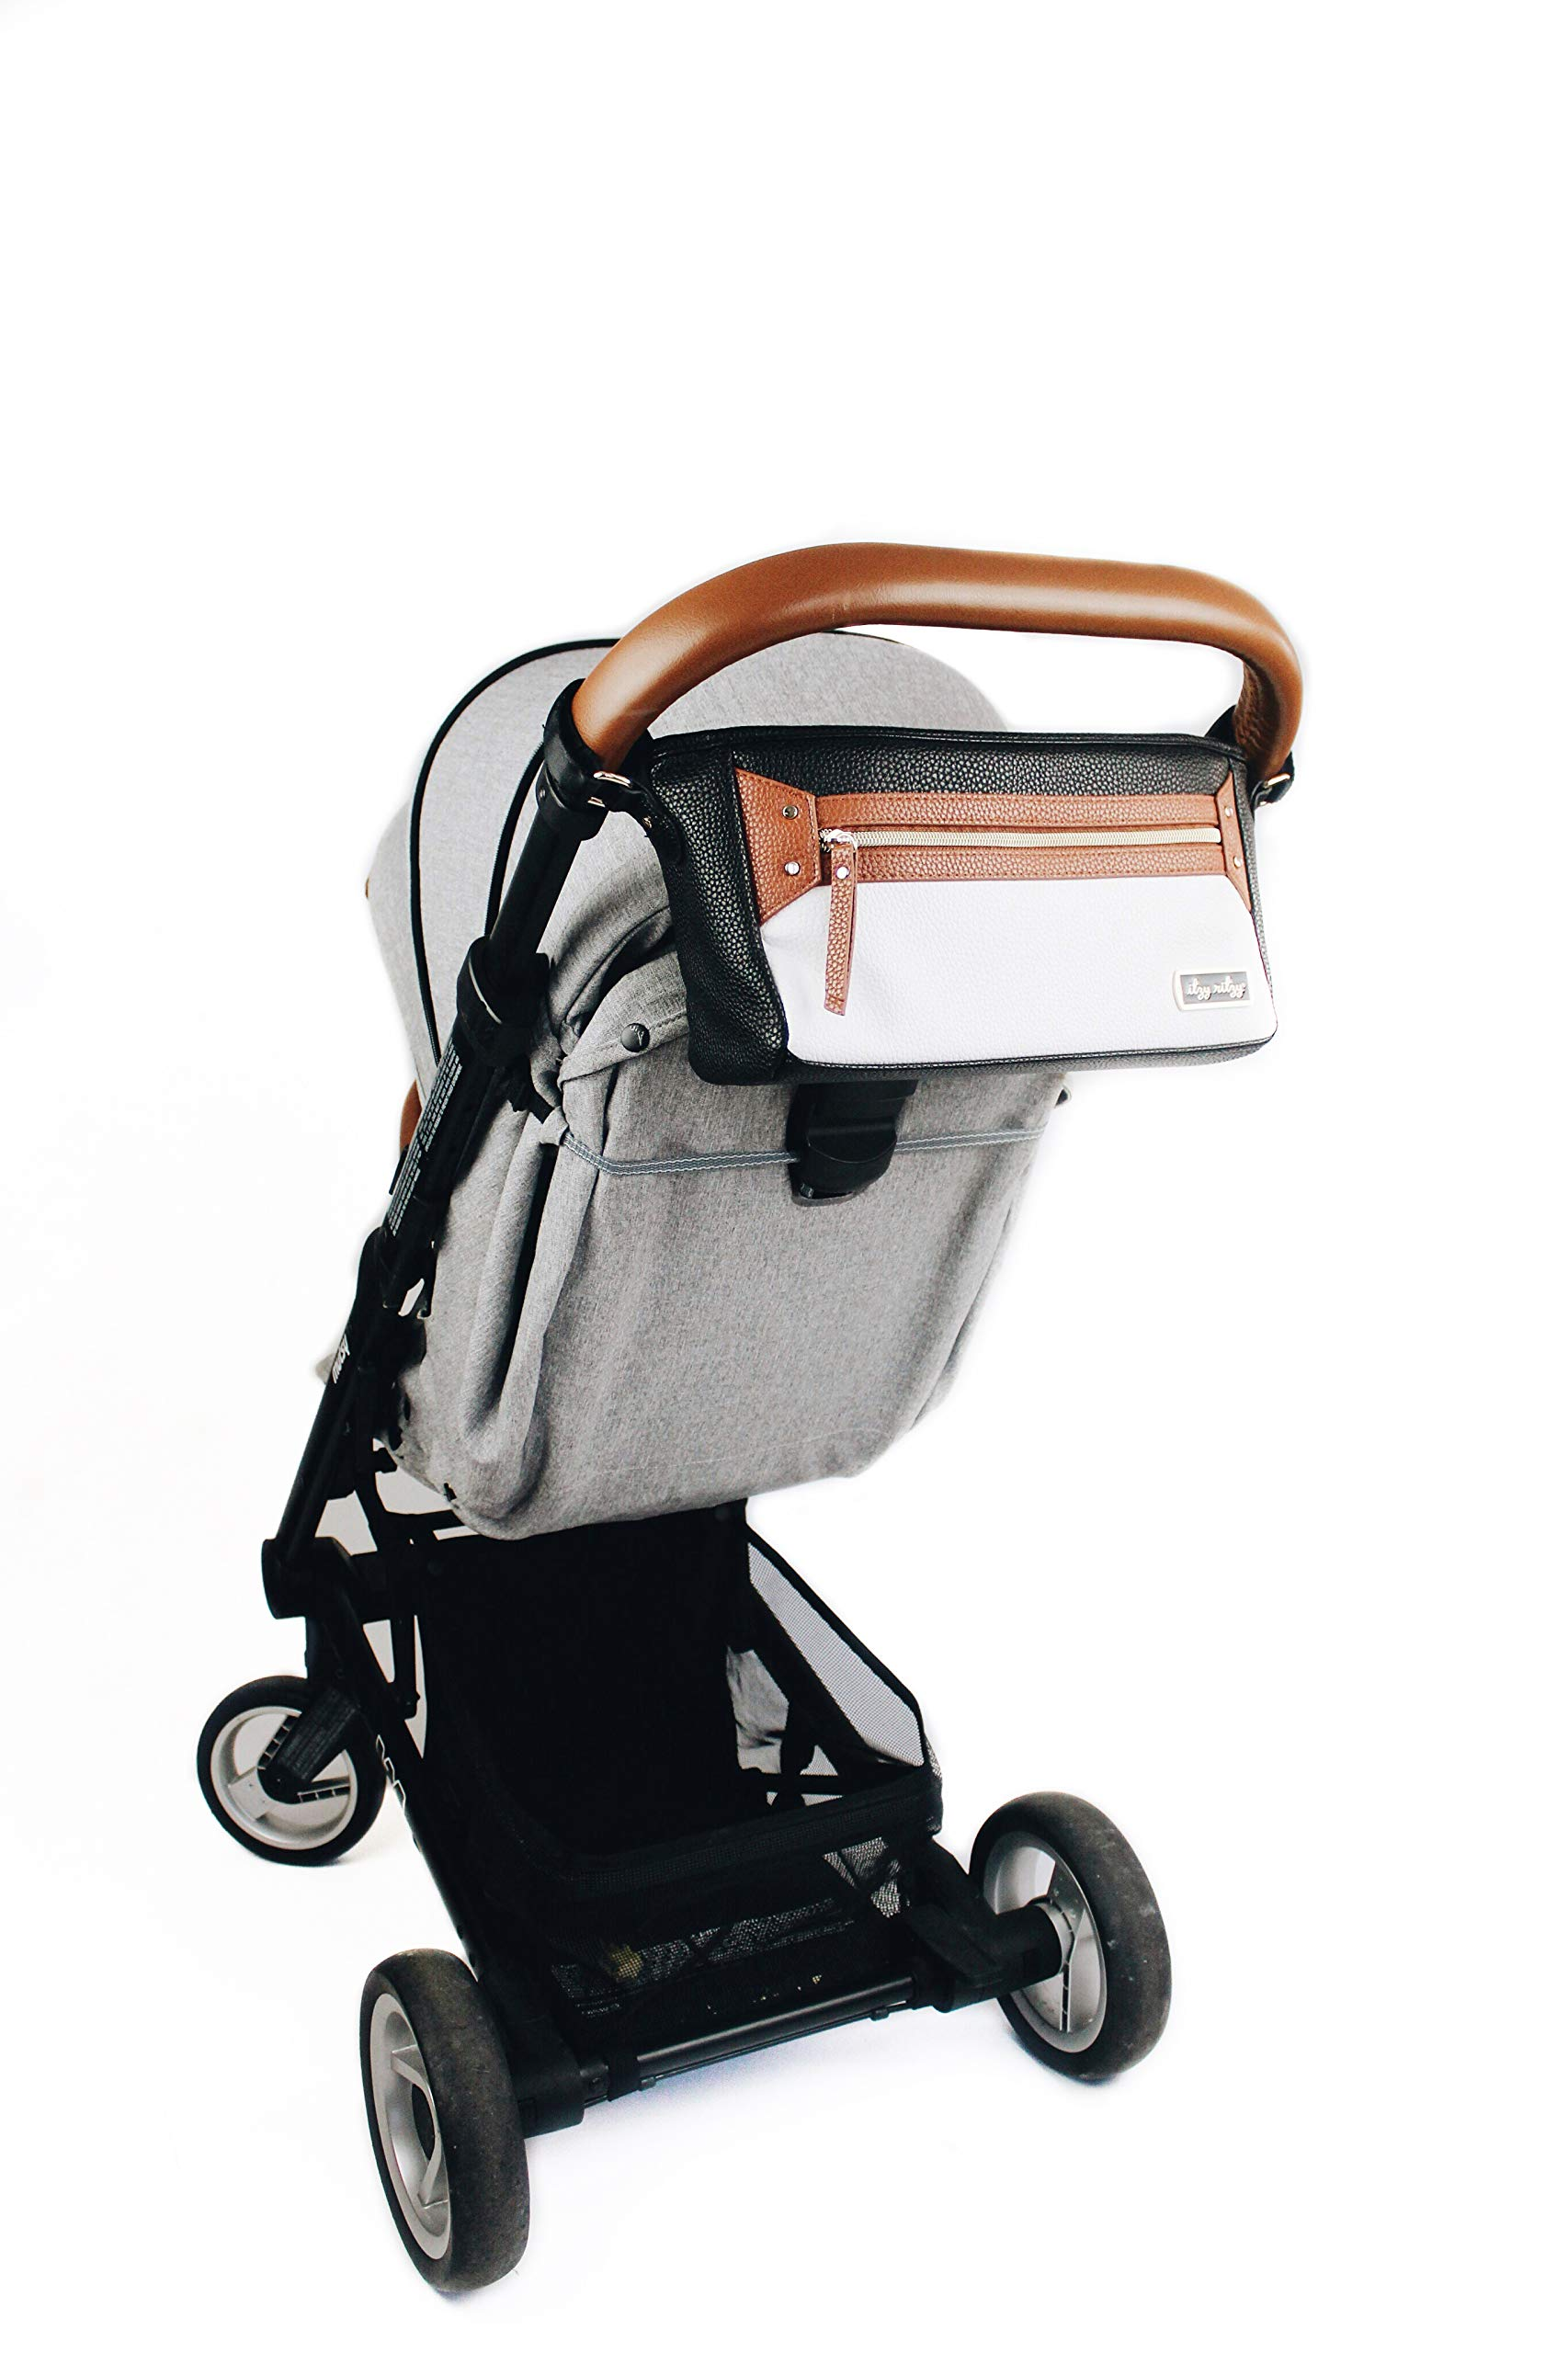 Itzy Ritzy Adjustable Stroller Caddy - Stroller Organizer Featuring Two Built-in Pockets, Front Zippered Pocket and Adjustable Straps to Fit Nearly Any Stroller, Coffee and Cream by Itzy Ritzy (Image #7)